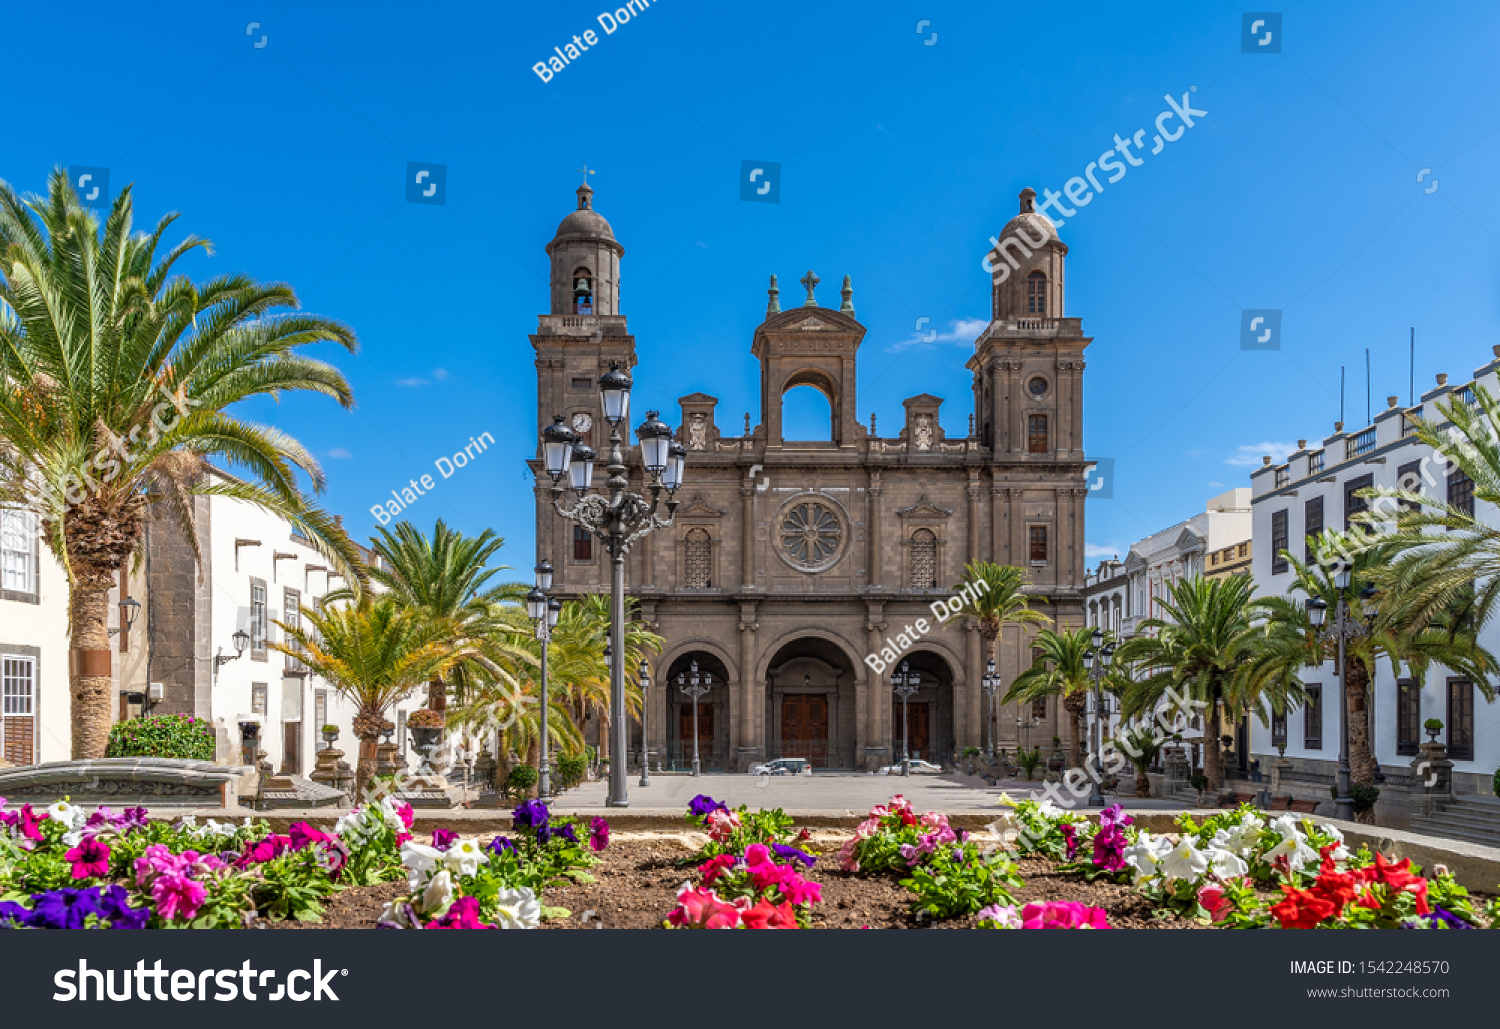 Landscape with Cathedral Santa Ana Vegueta in Las Palmas, Gran Canaria, Canary Islands, Spain #1542248570